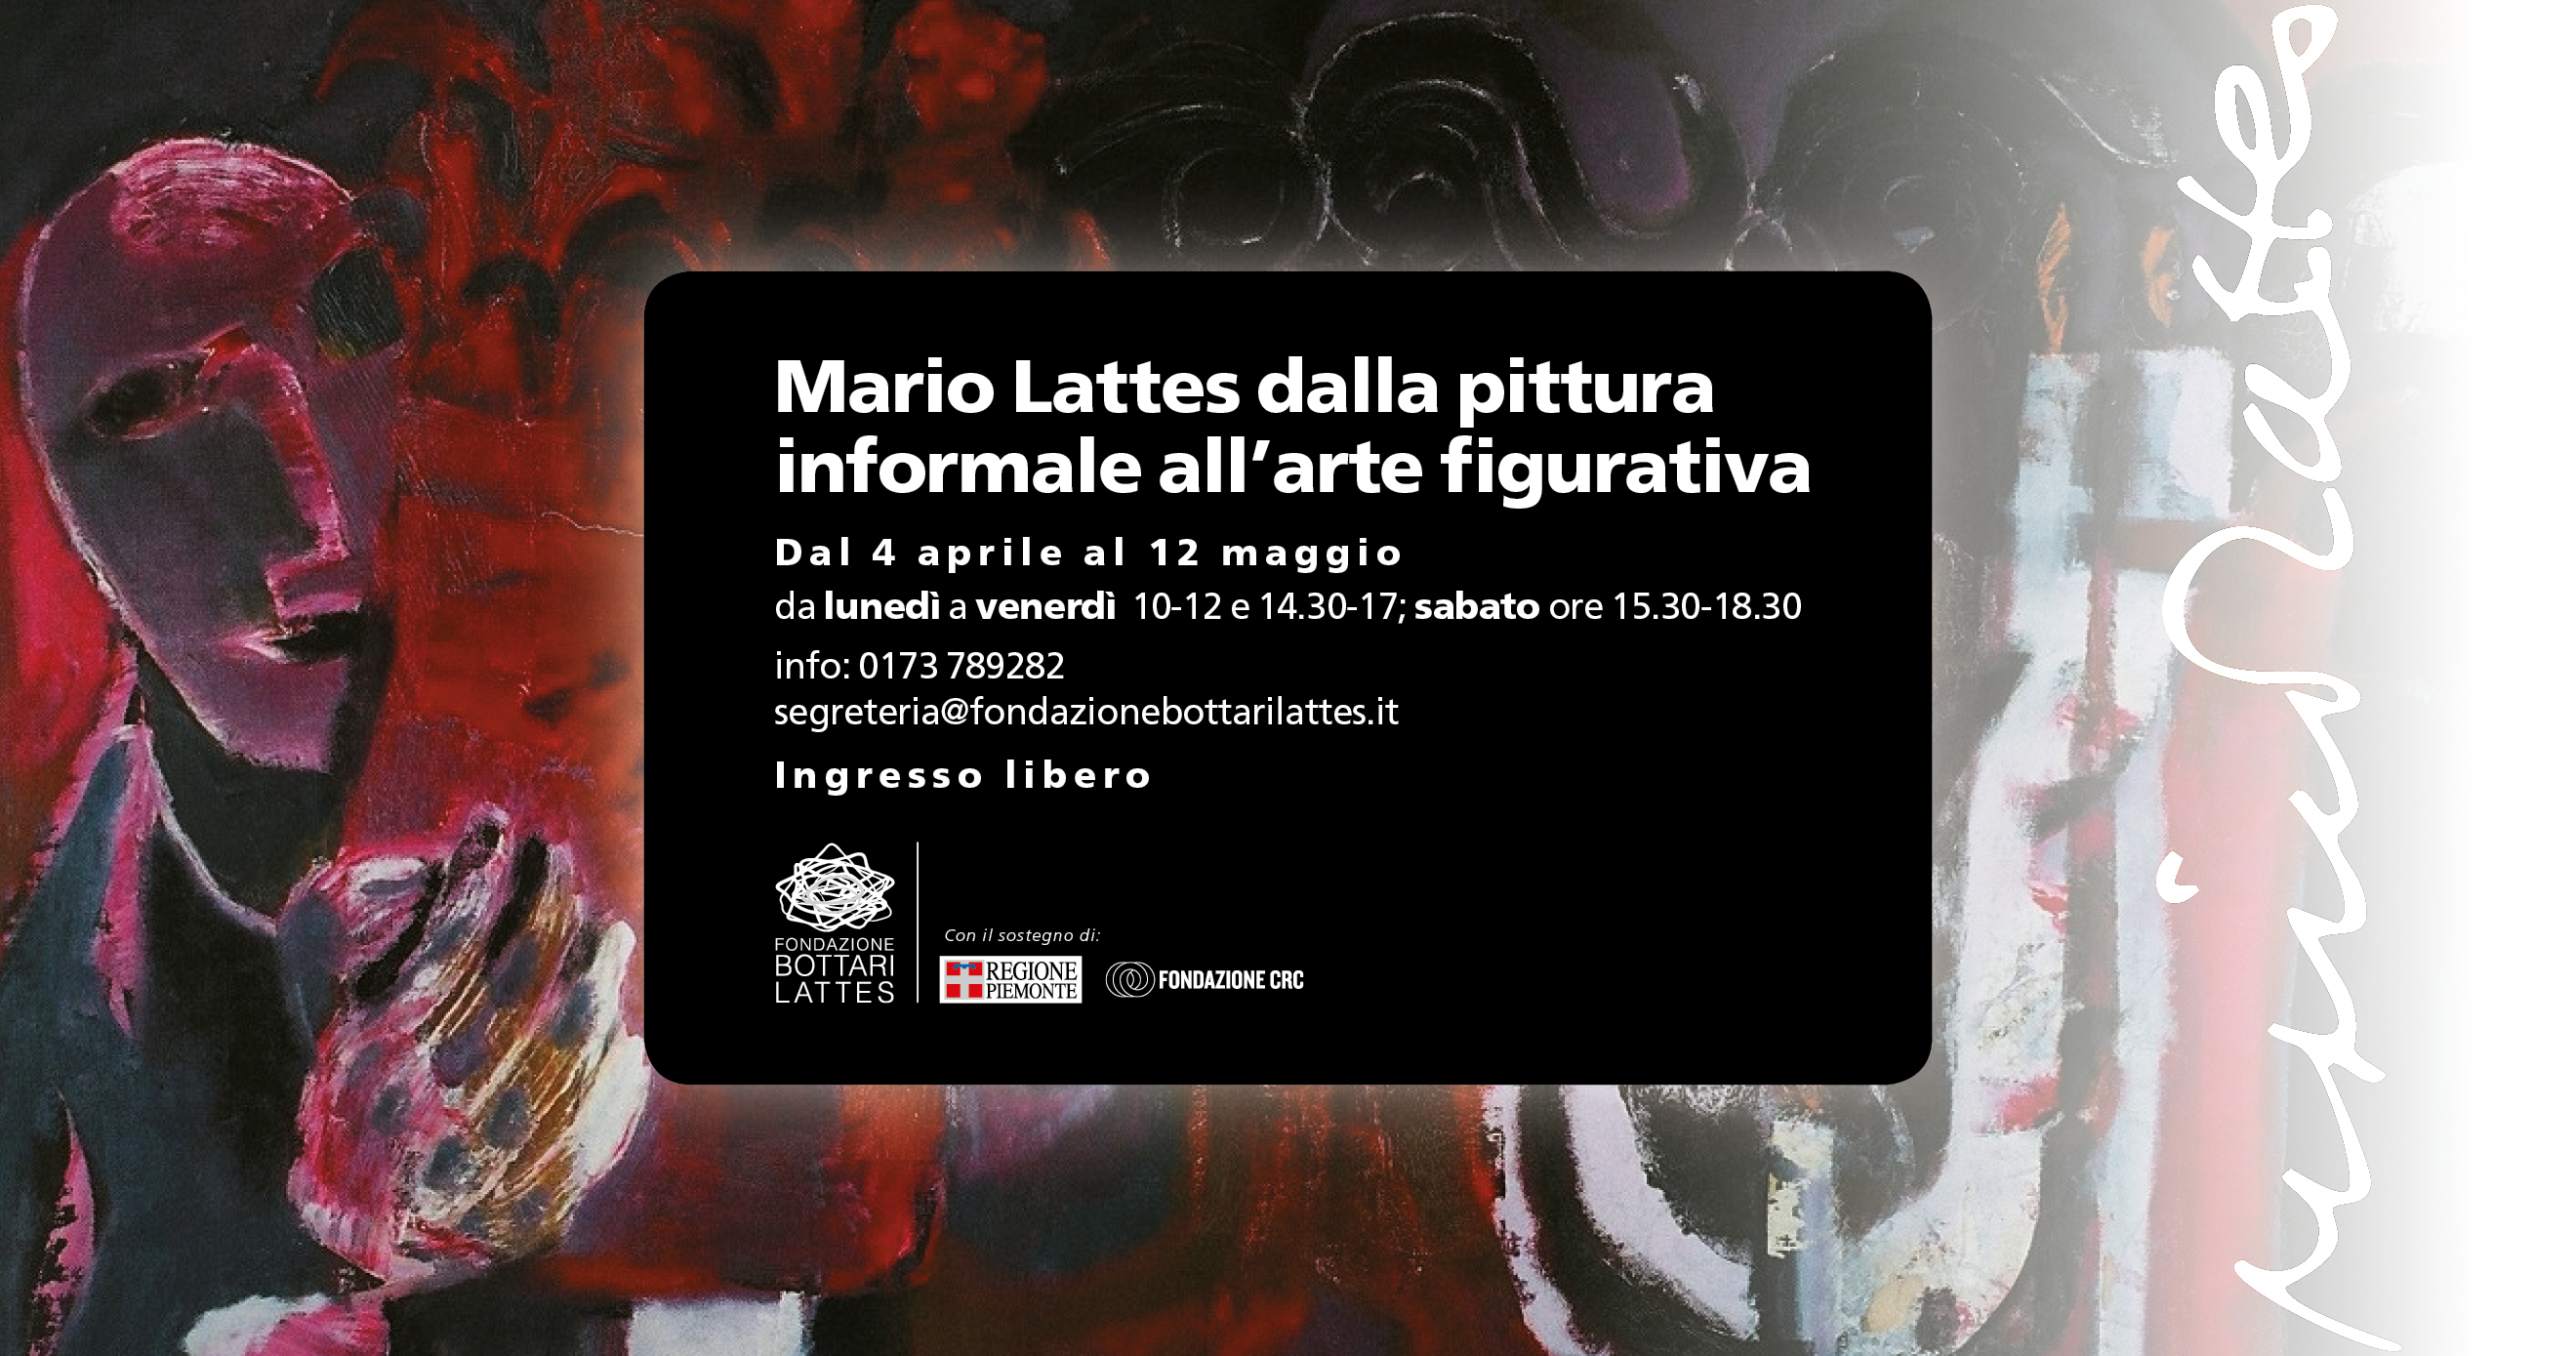 Mario Lattes dalla pittura informale all'arte figurativa